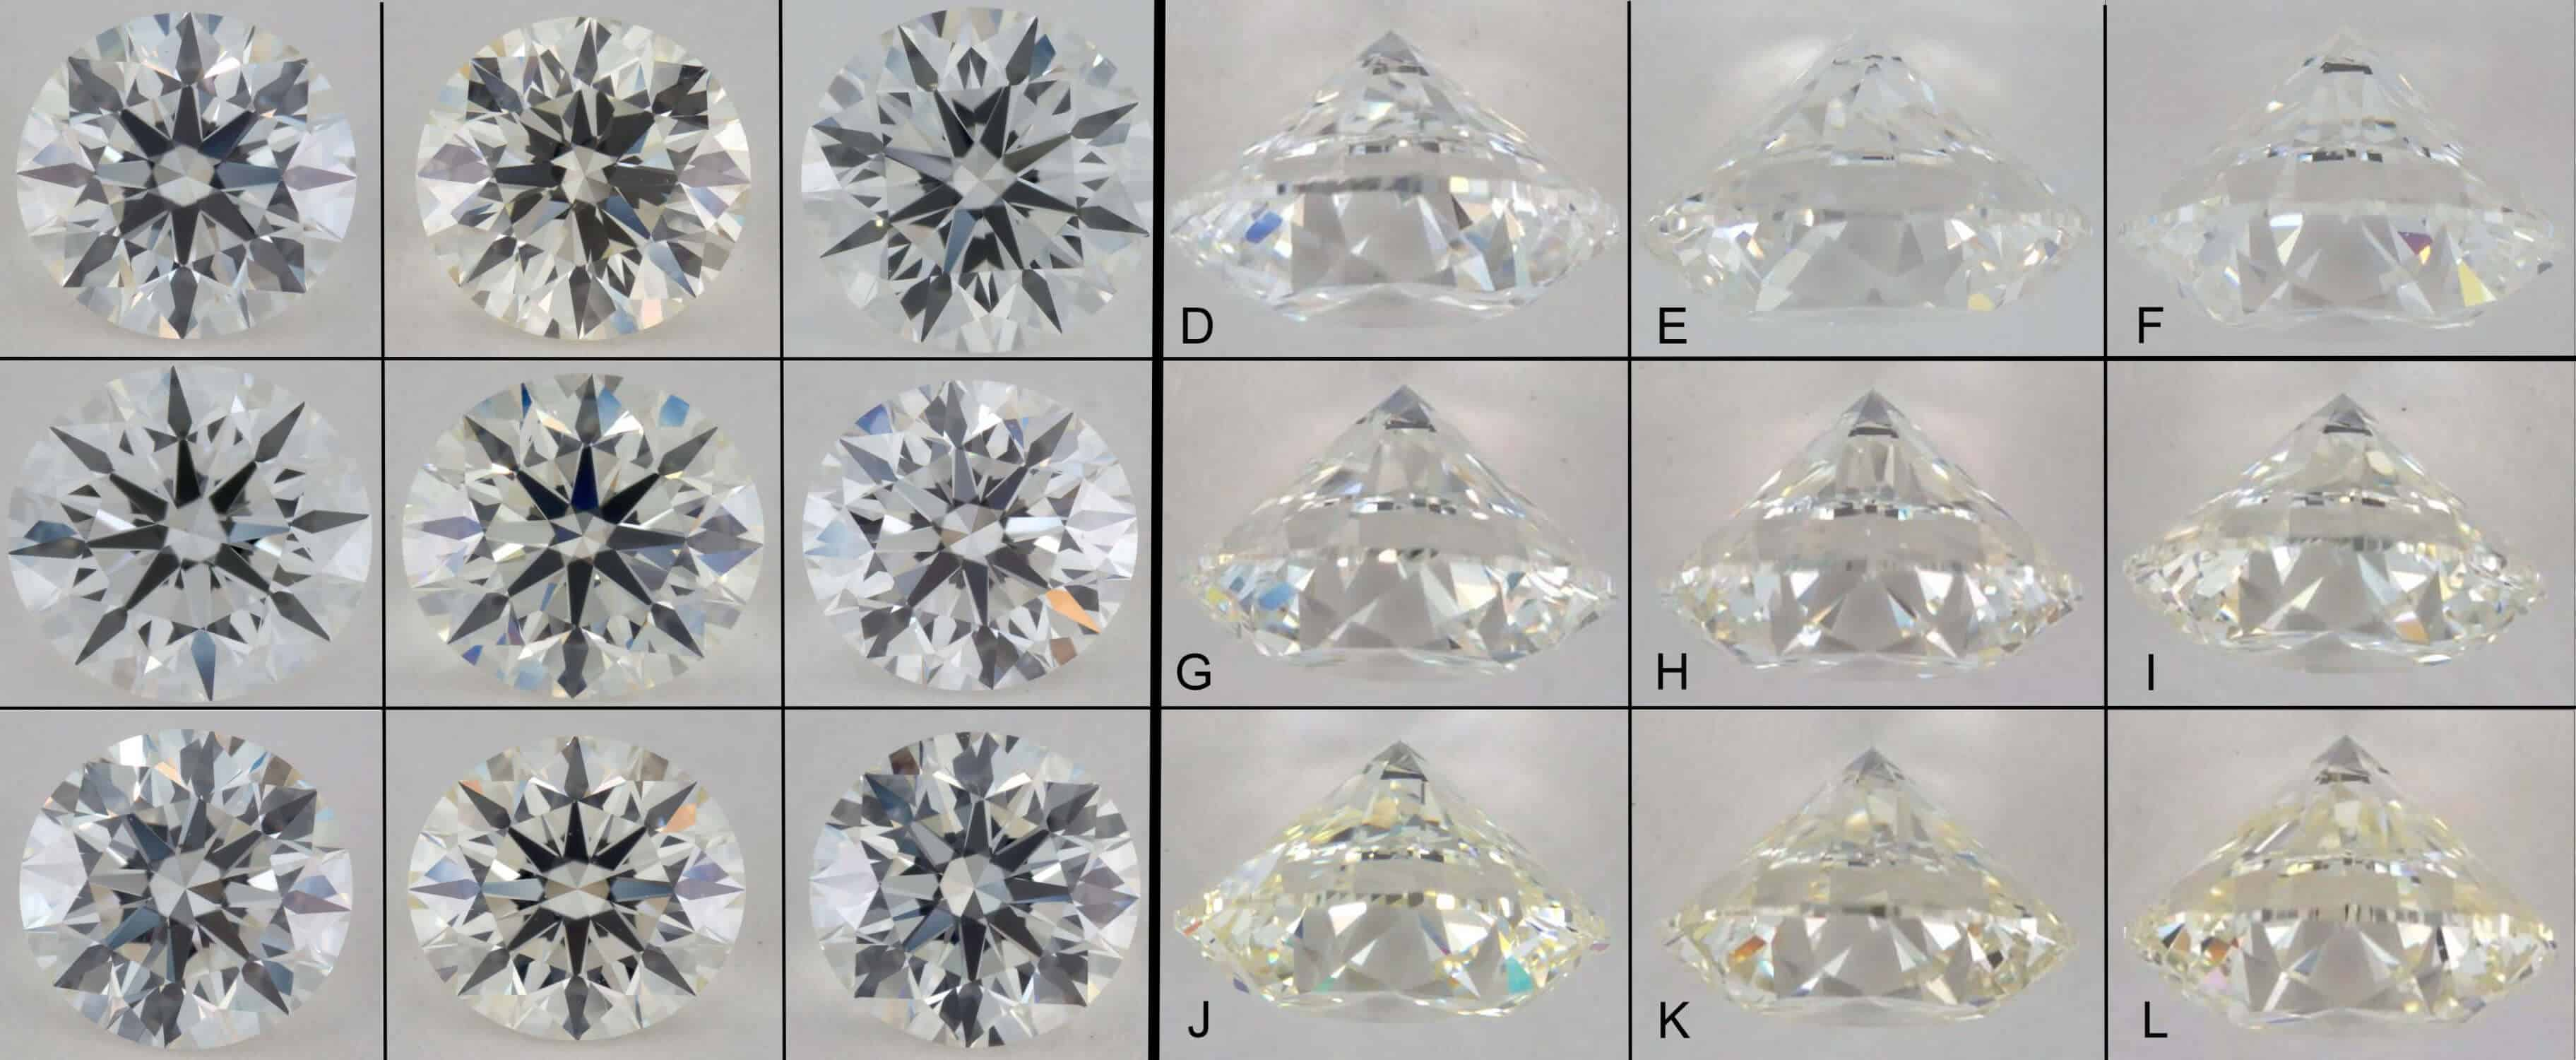 of a diamond qqqw characteristics called is clarity diamonds quality existence visual appearance relating and star s internal the grade ltd education to en factors inclusions